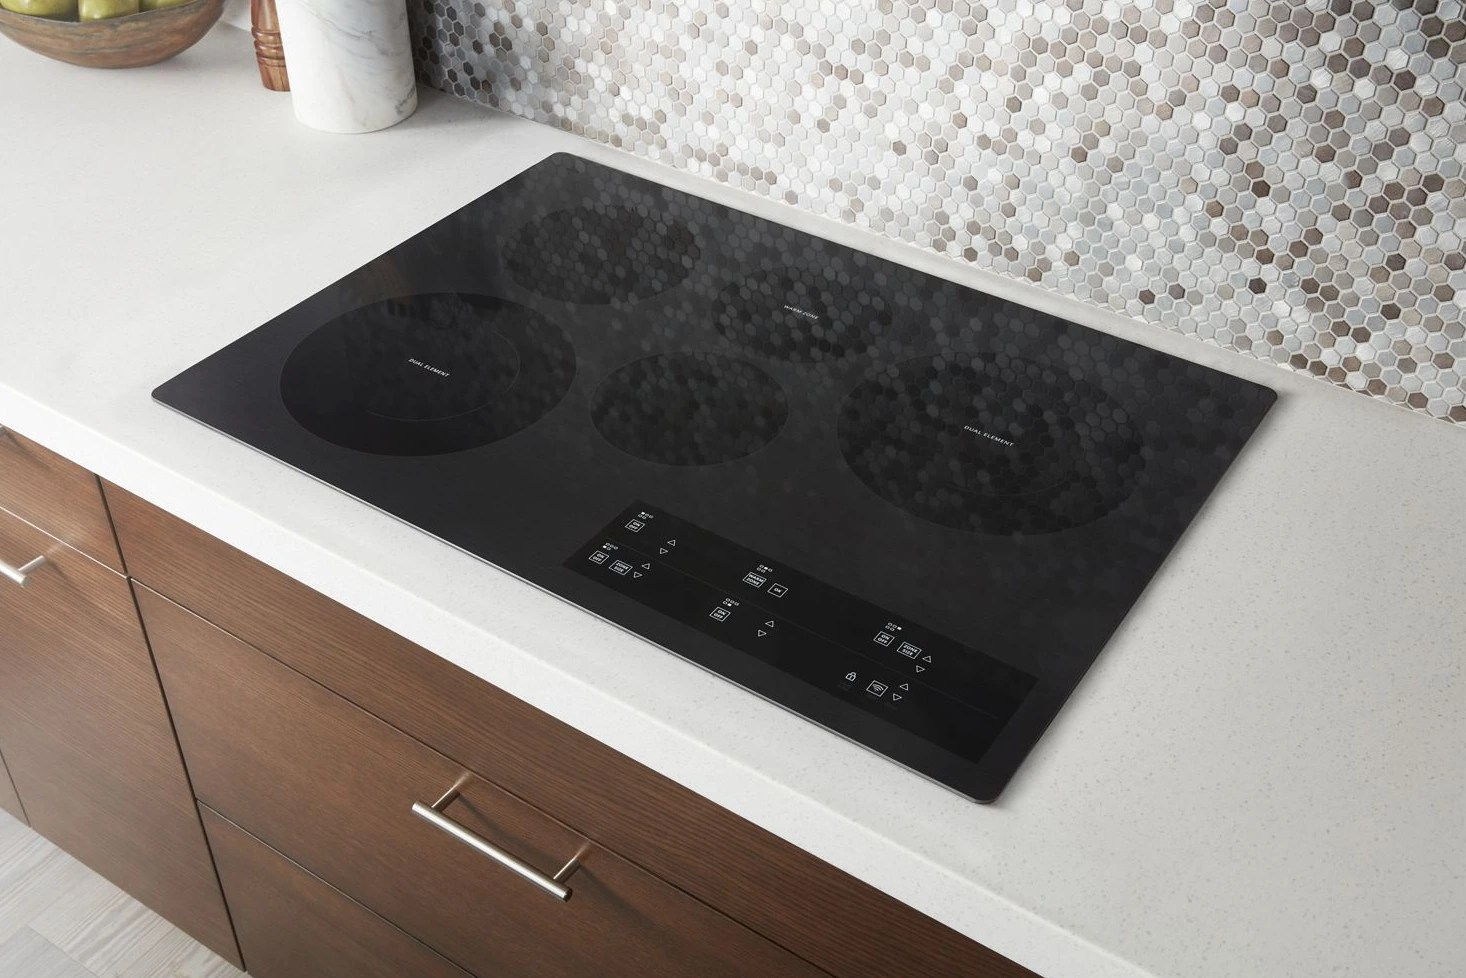 Whirlpool Countertop Stove Whirlpool 30 Electric Cooktop Black Wce97us0hb Home Appliance